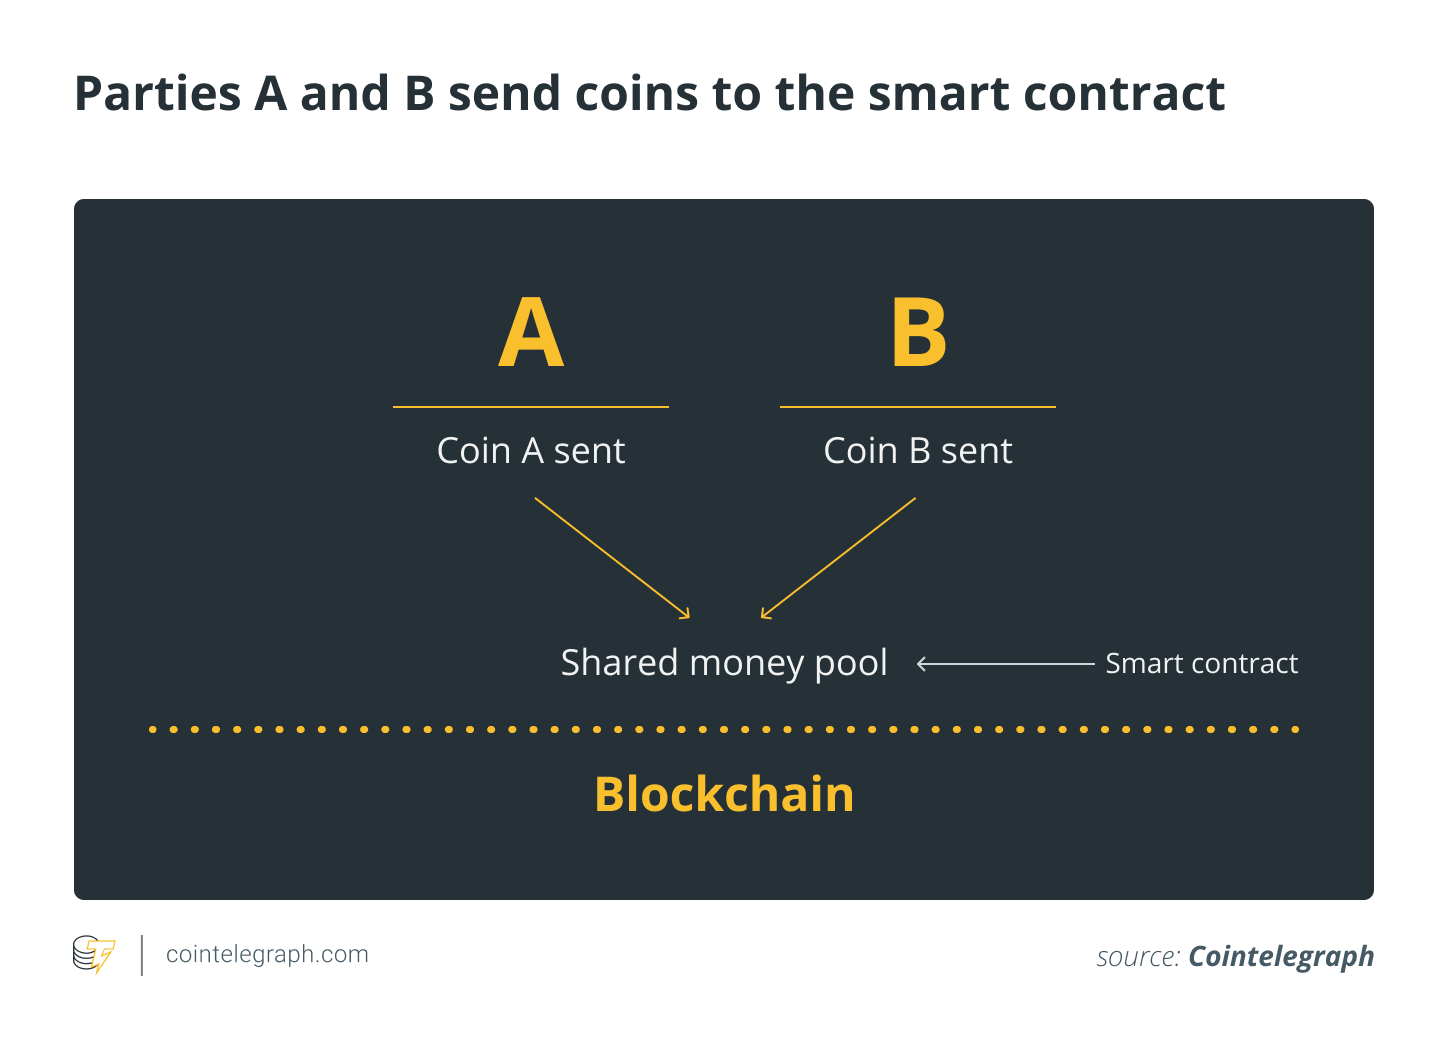 70c3dc53d783127777bfcfc26921a84c - Lessons Learned on Deploying Smart Contracts